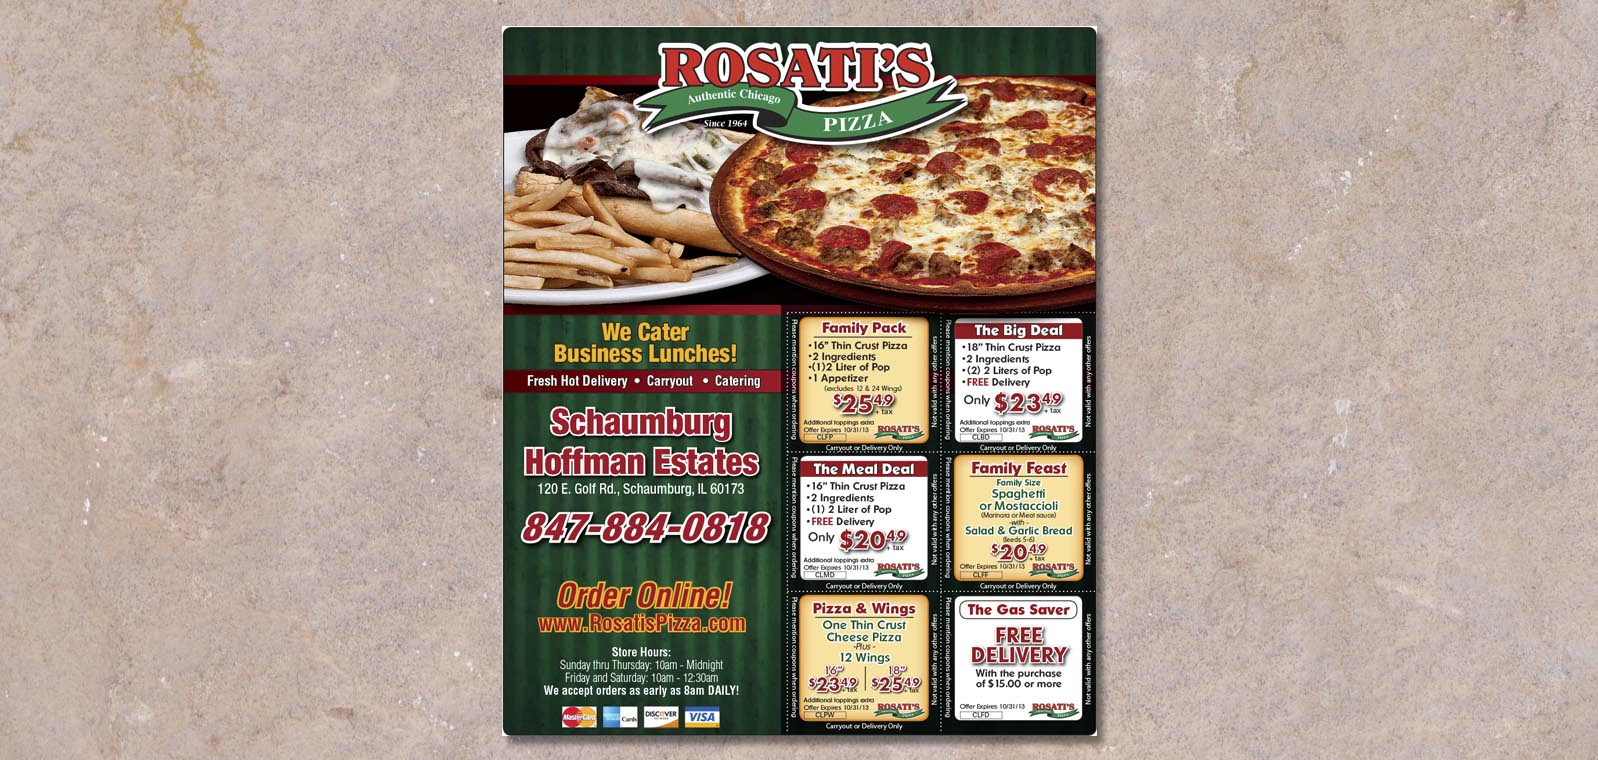 Publication Ad Graphic Design for Rosati's Pizza, by Roselle Graphic Designer Controlled Color, Inc.